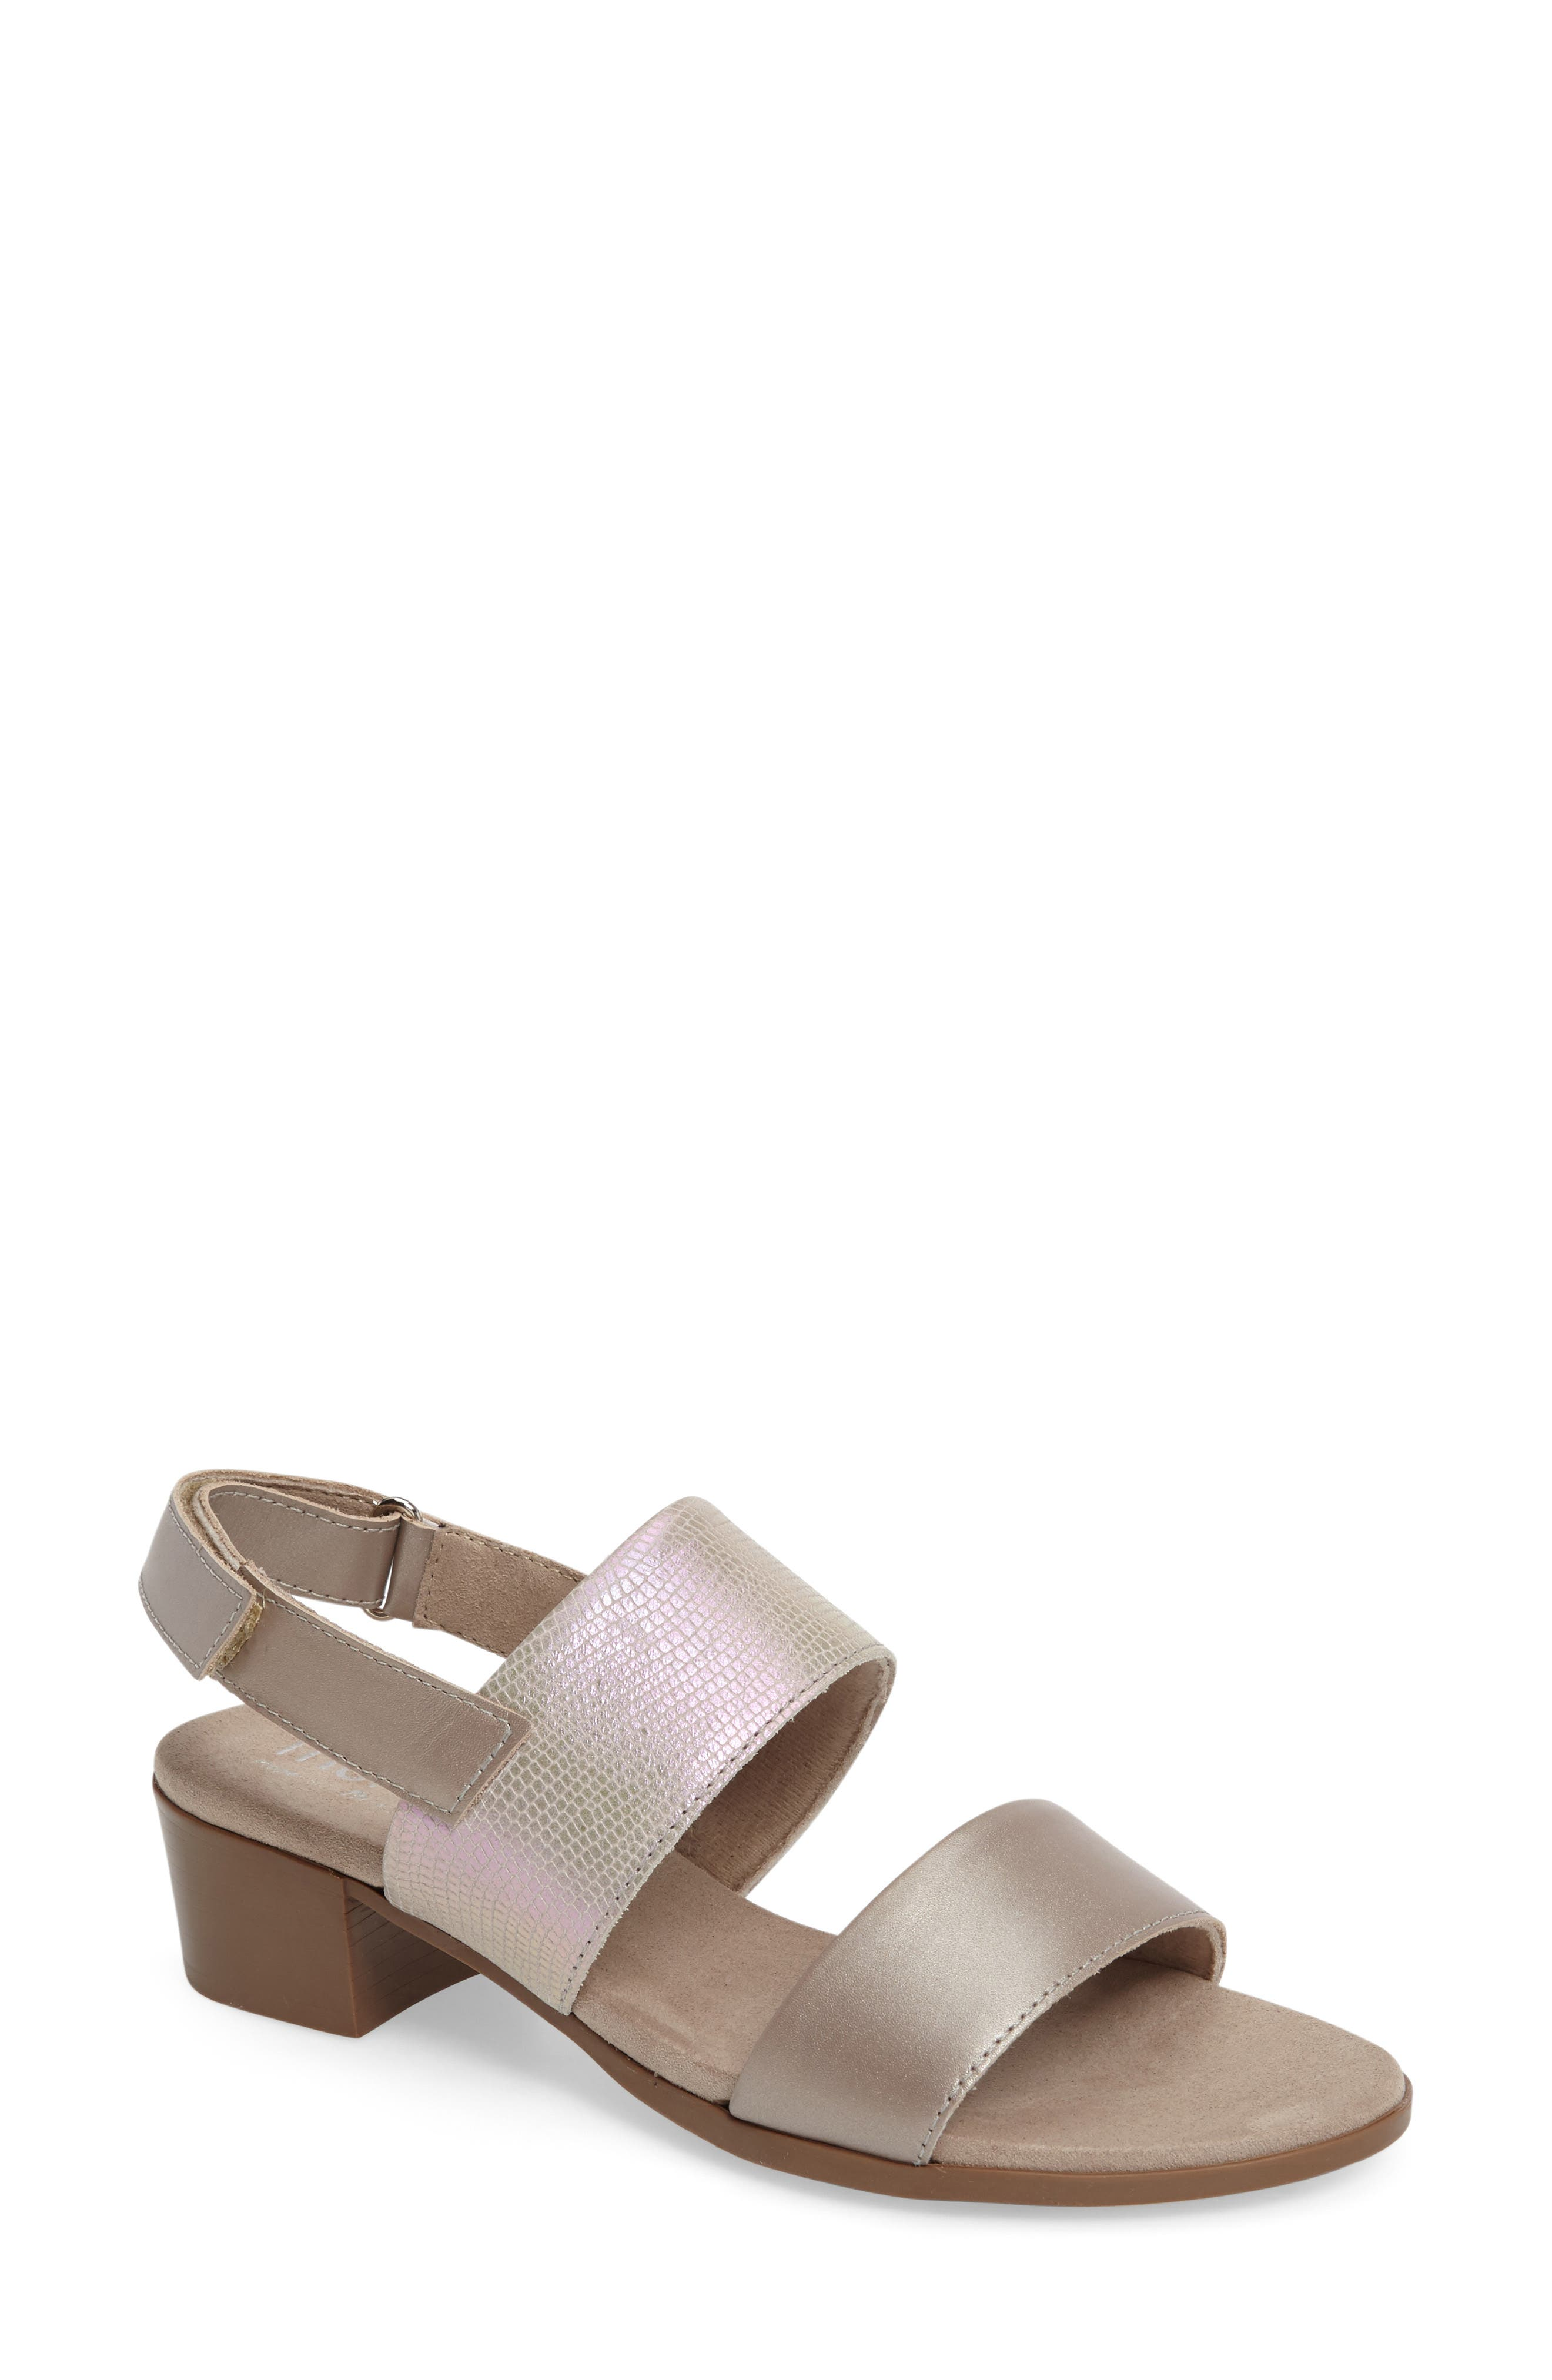 Kristal Sandal,                         Main,                         color, Pearl Metallic Lizard Leather